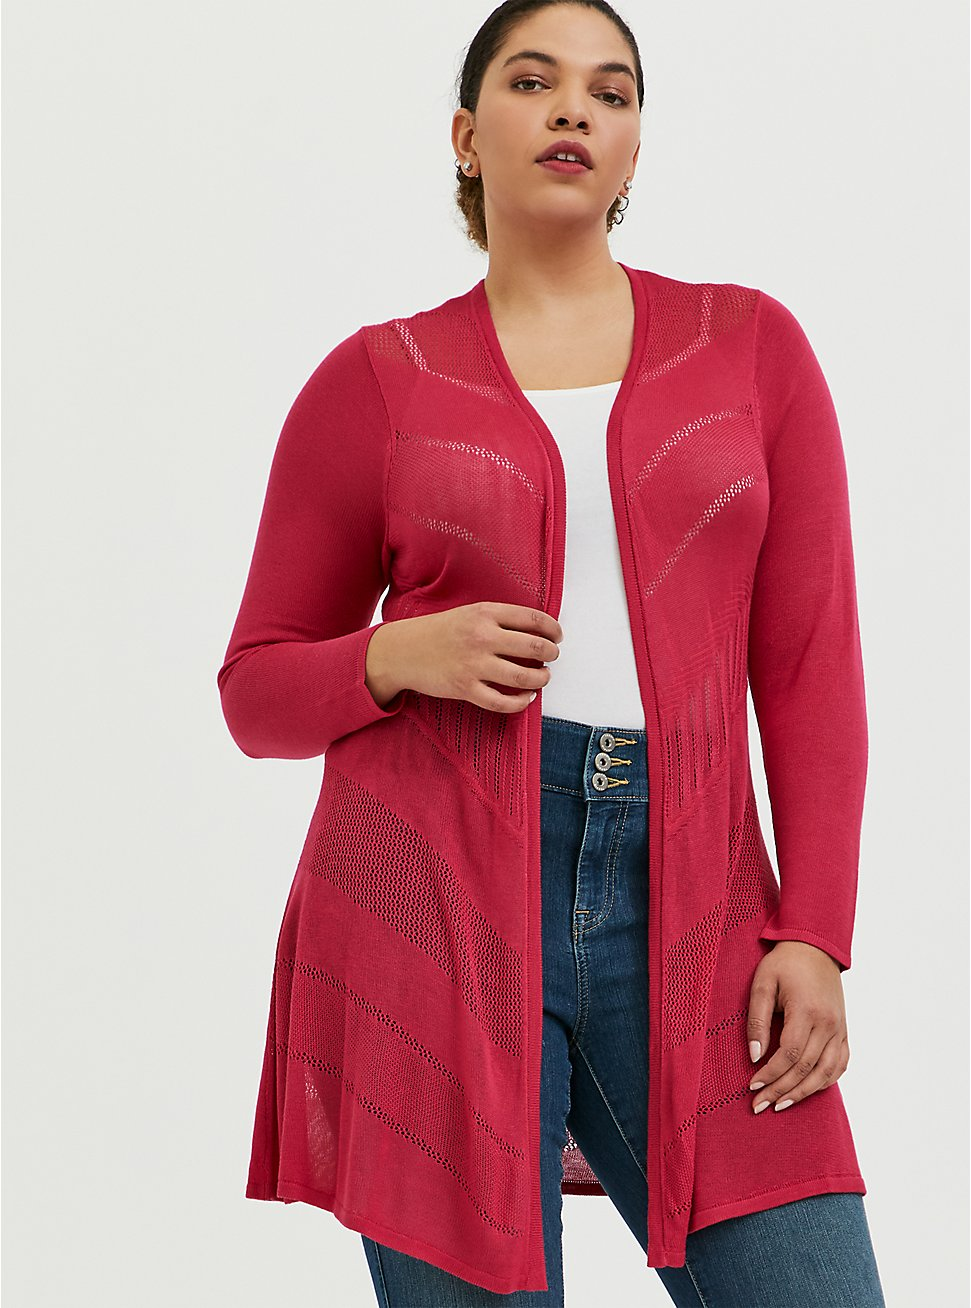 Fuchsia Pink Pointelle Open Cardigan, PINK PASSION, hi-res